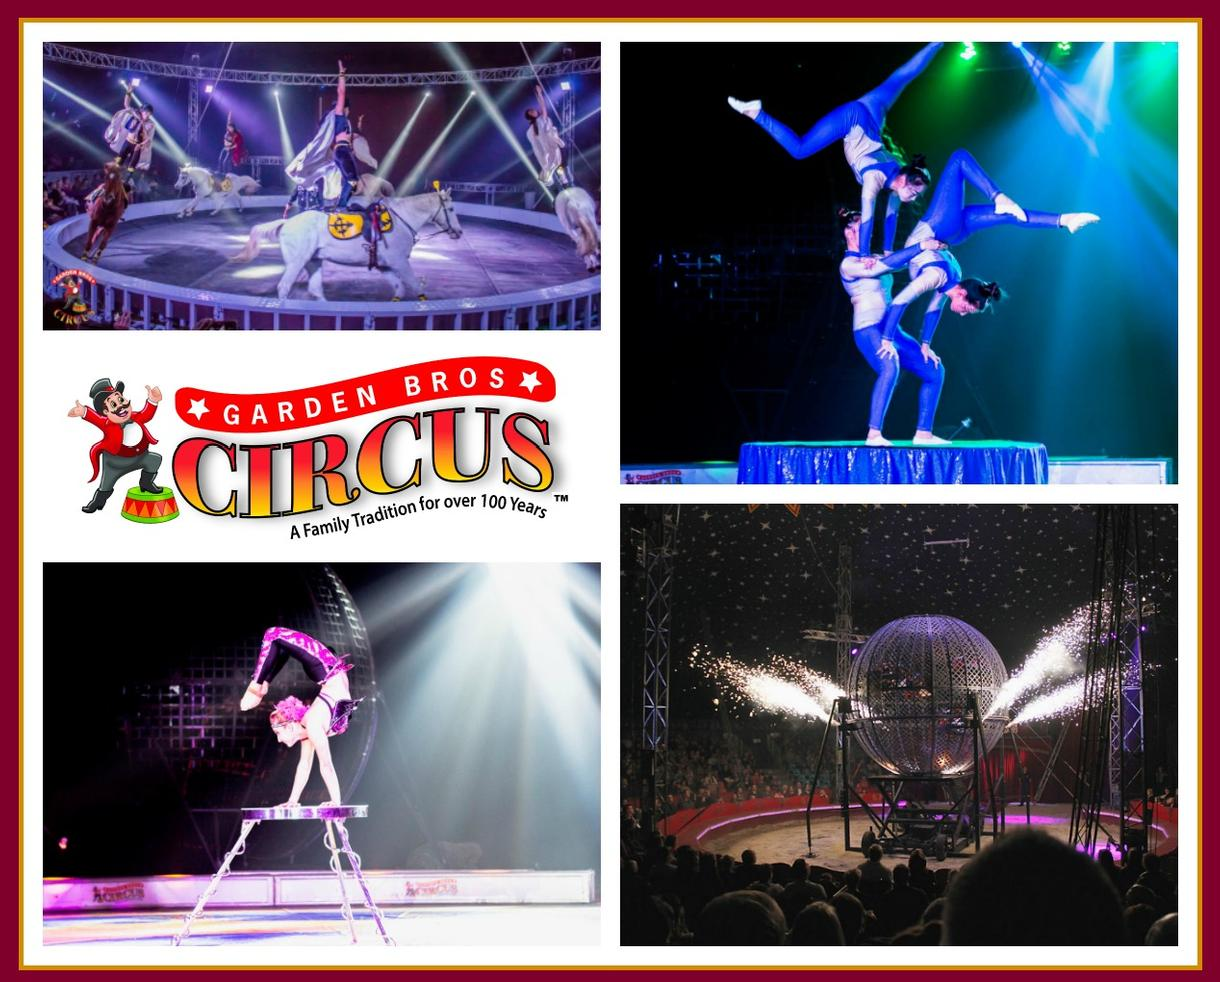 Adult Ticket to the Garden Bros Circus: Conyers, GA on October 29, 2018